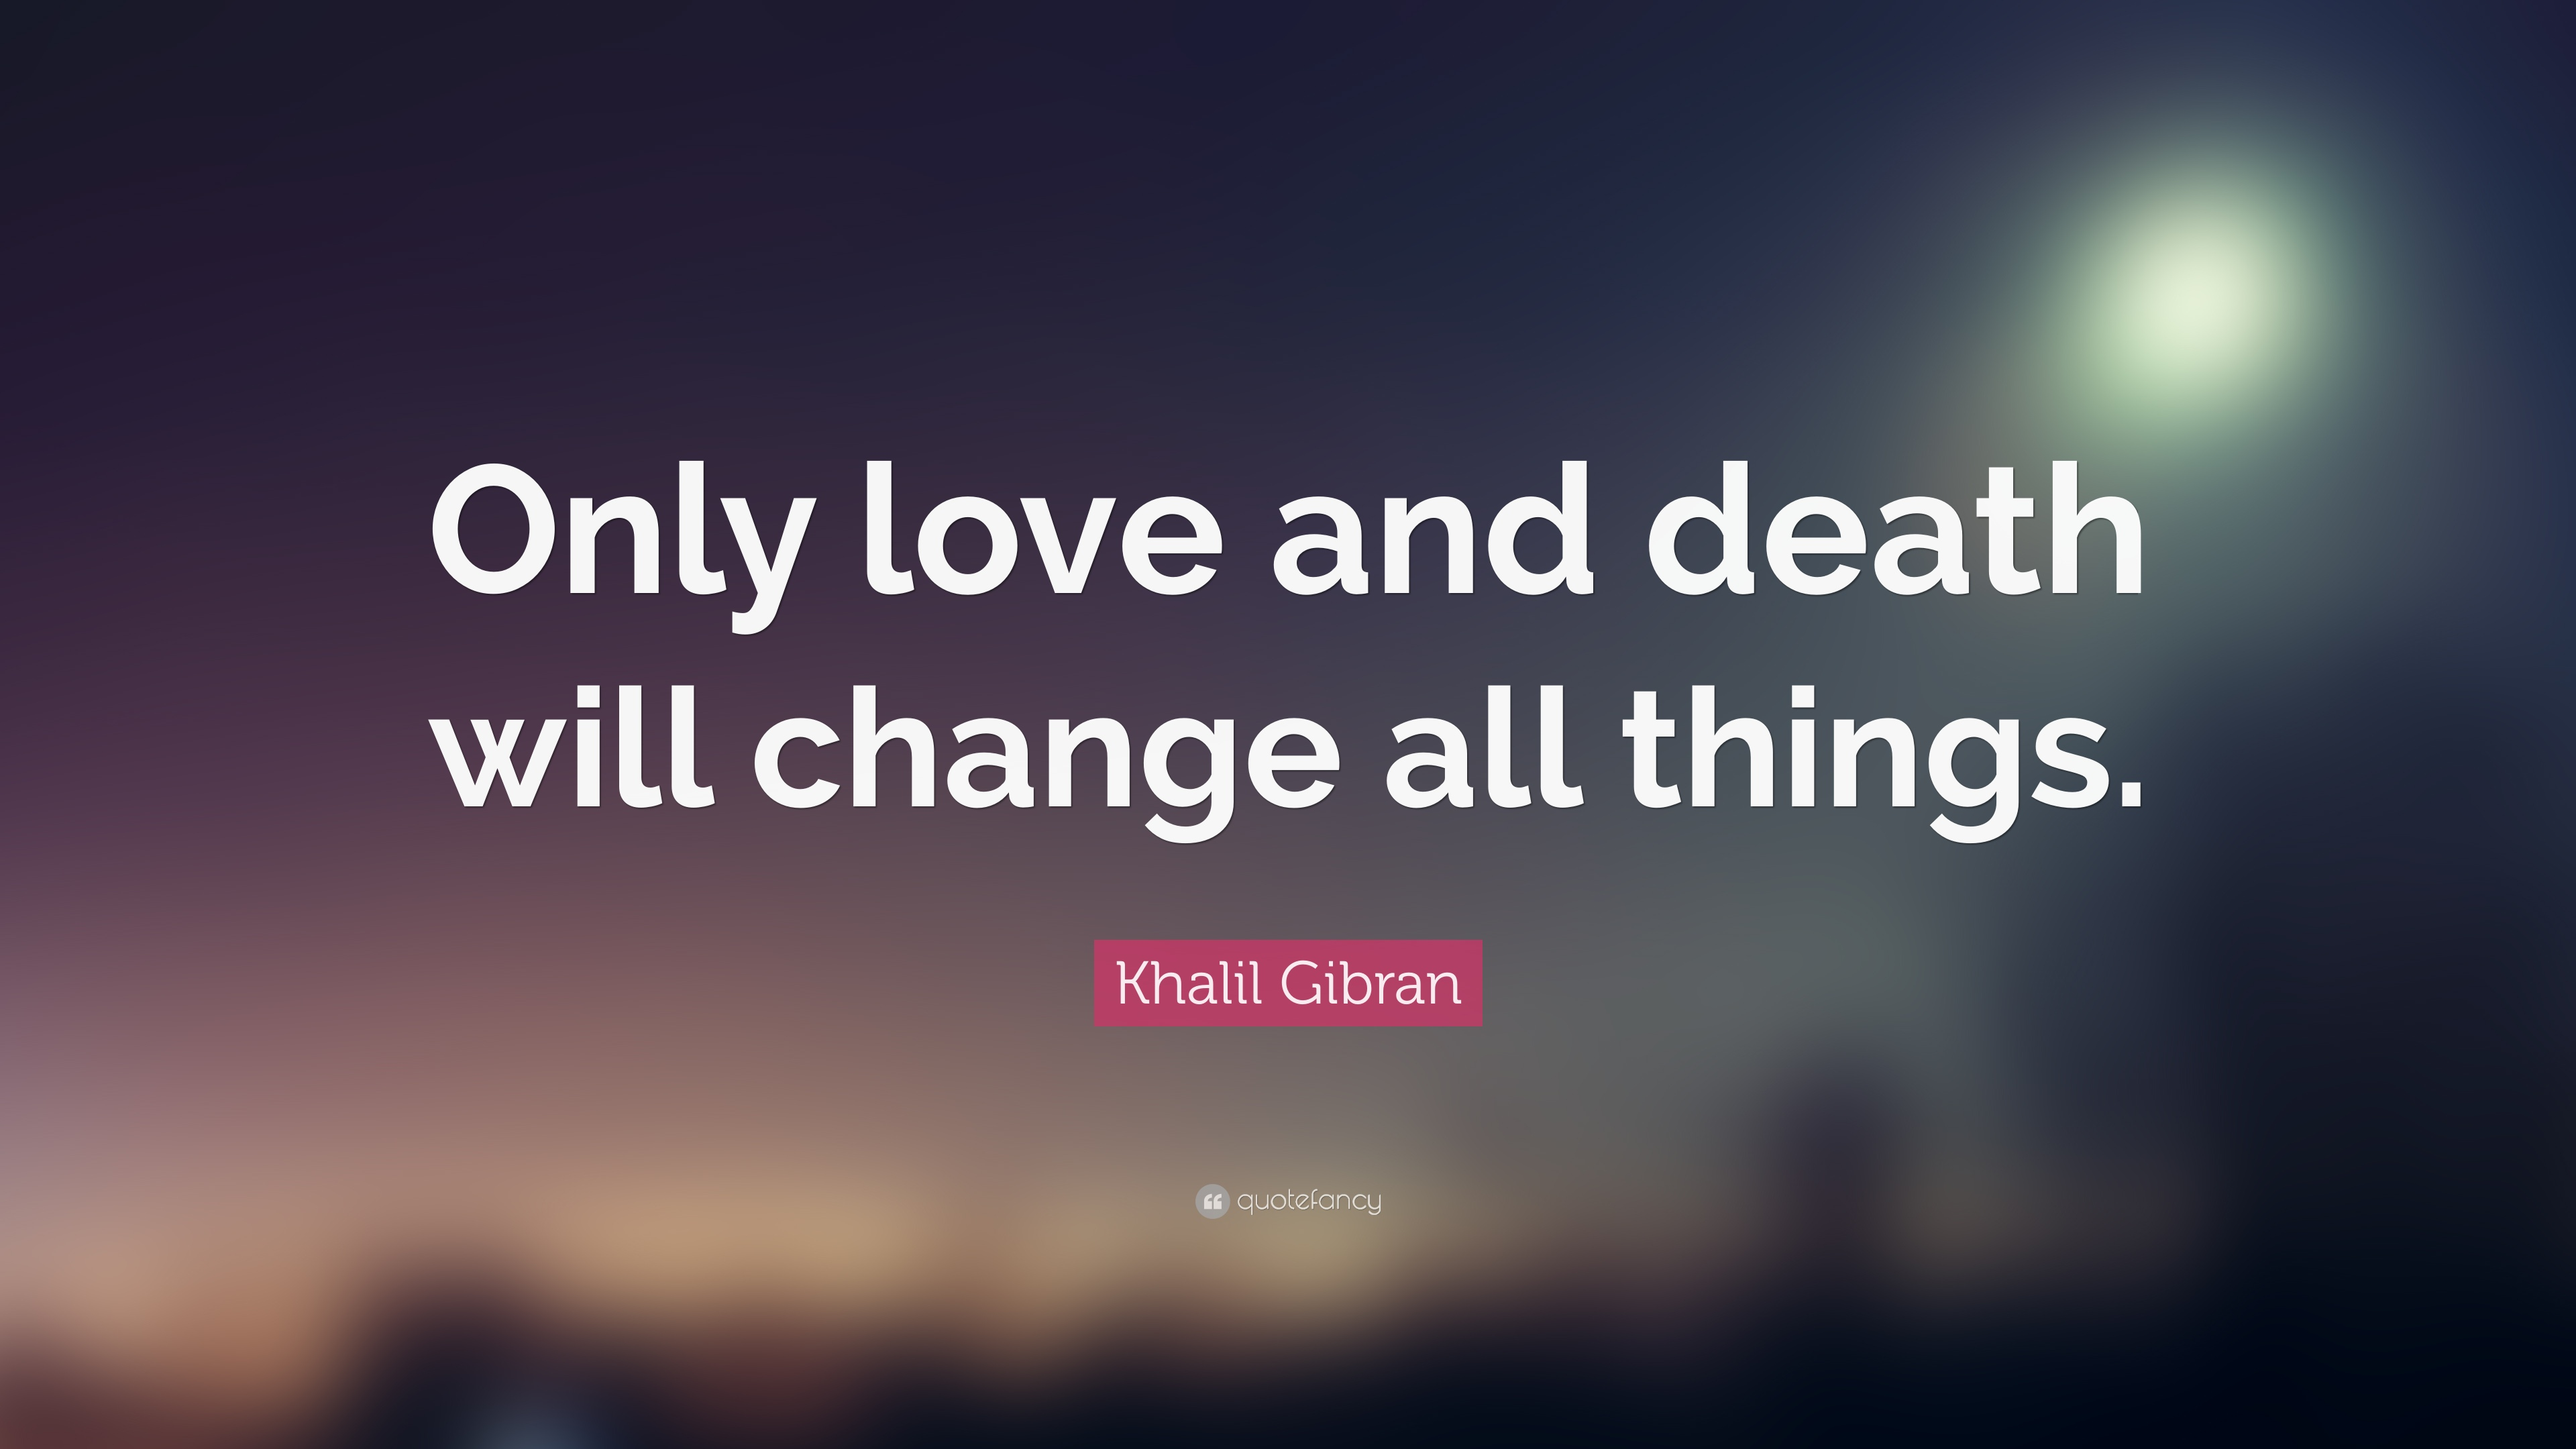 Khalil Gibran Quote: U201cOnly Love And Death Will Change All Things.u201d